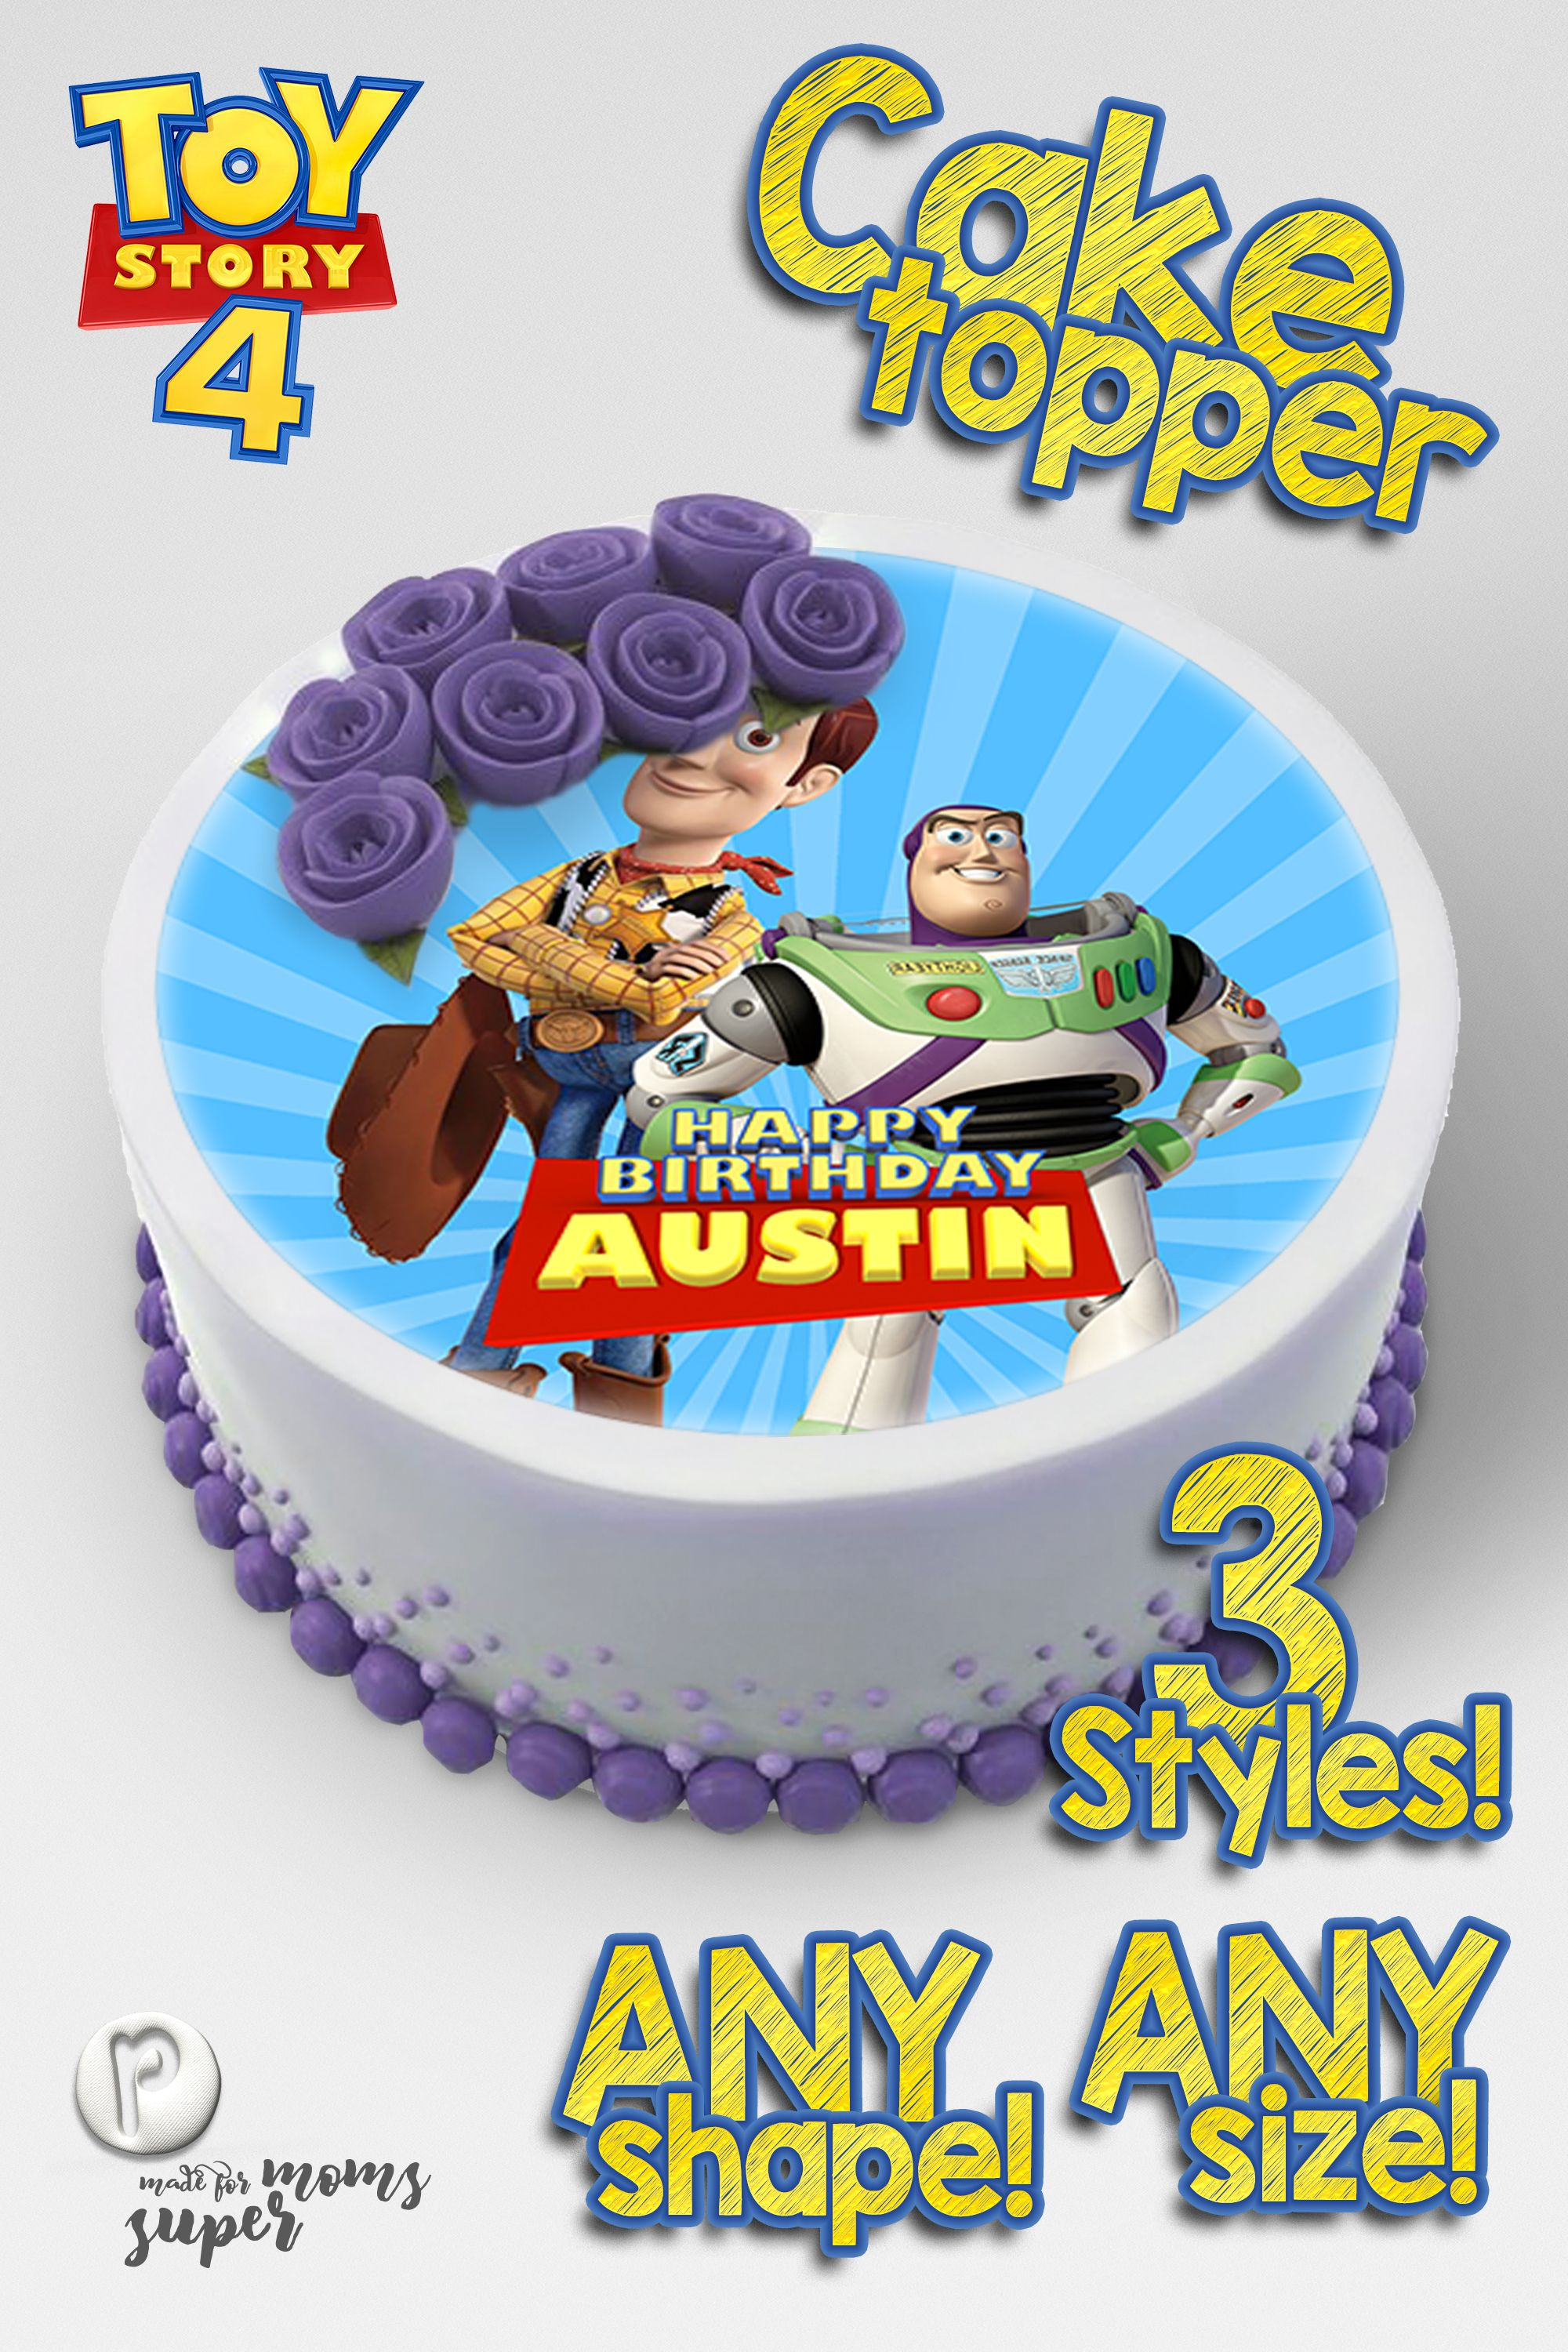 Any age and can add name Personalised Toy story Cake Topper Decoration Birthday